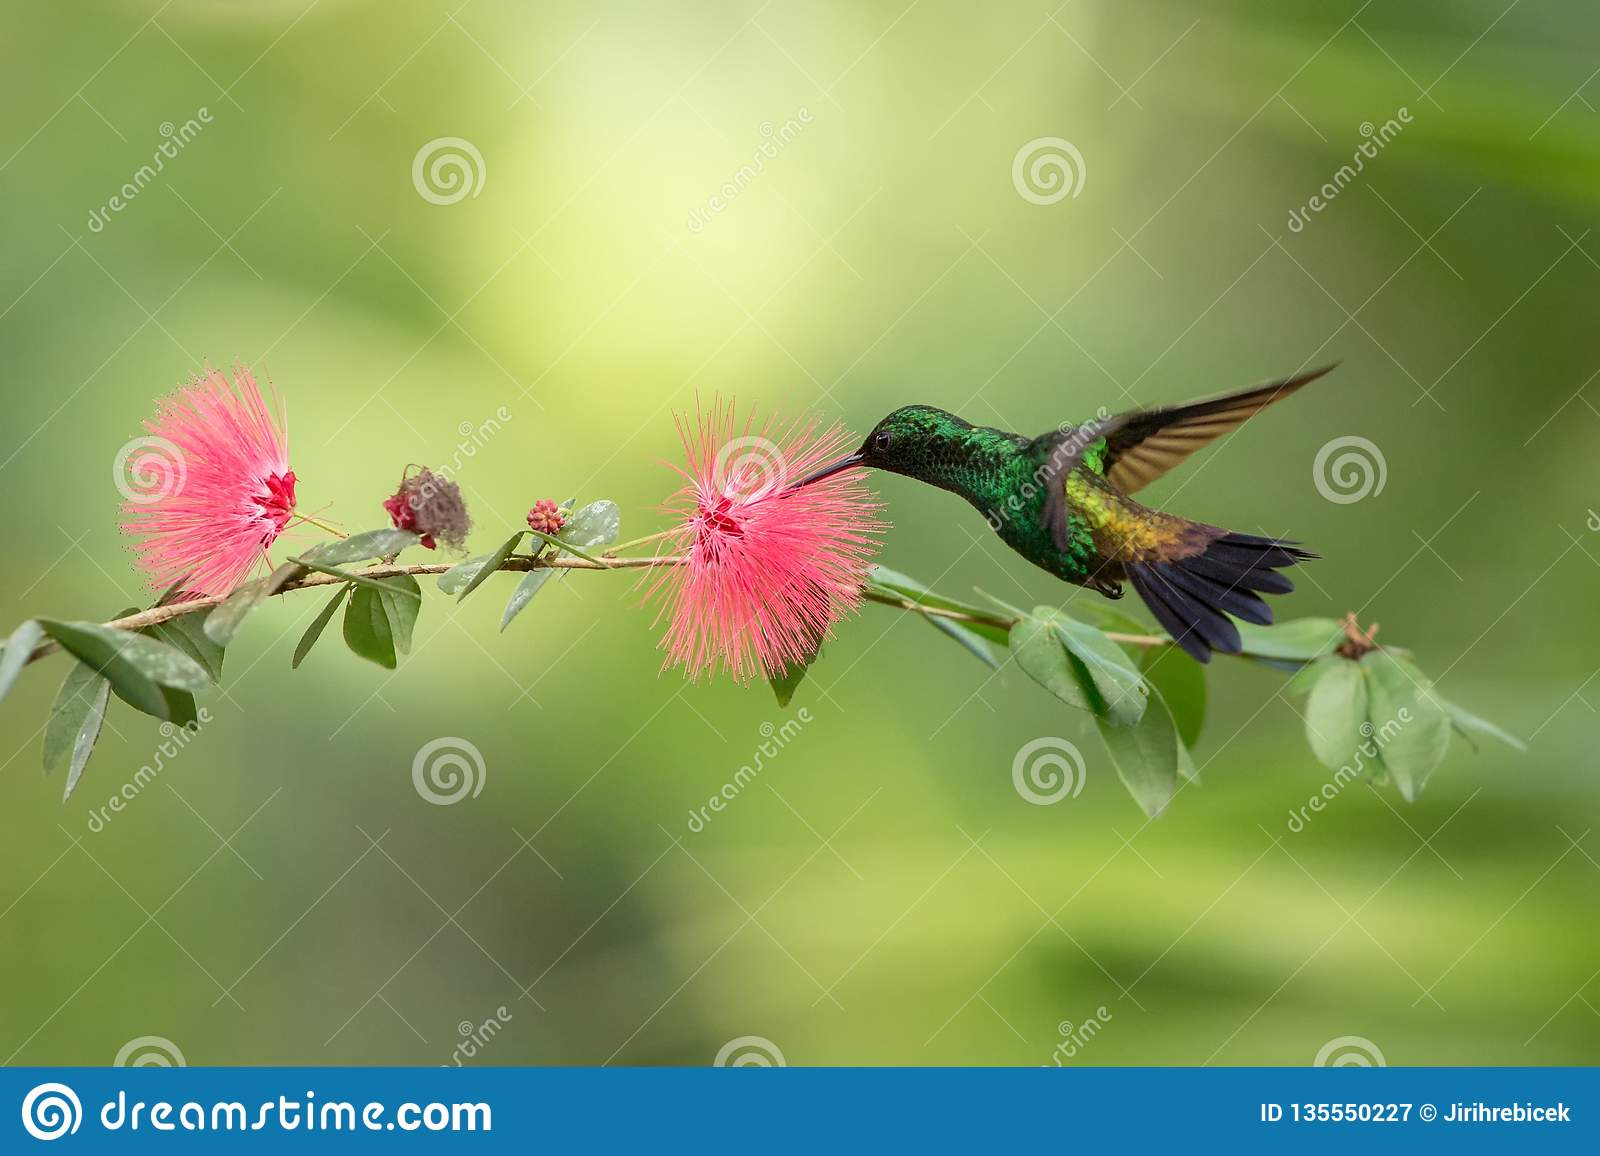 Copper-rumped Hummingbird hovering next to pink mimosa flower, bird in flight, caribean tropical forest, Trinidad and Tobago